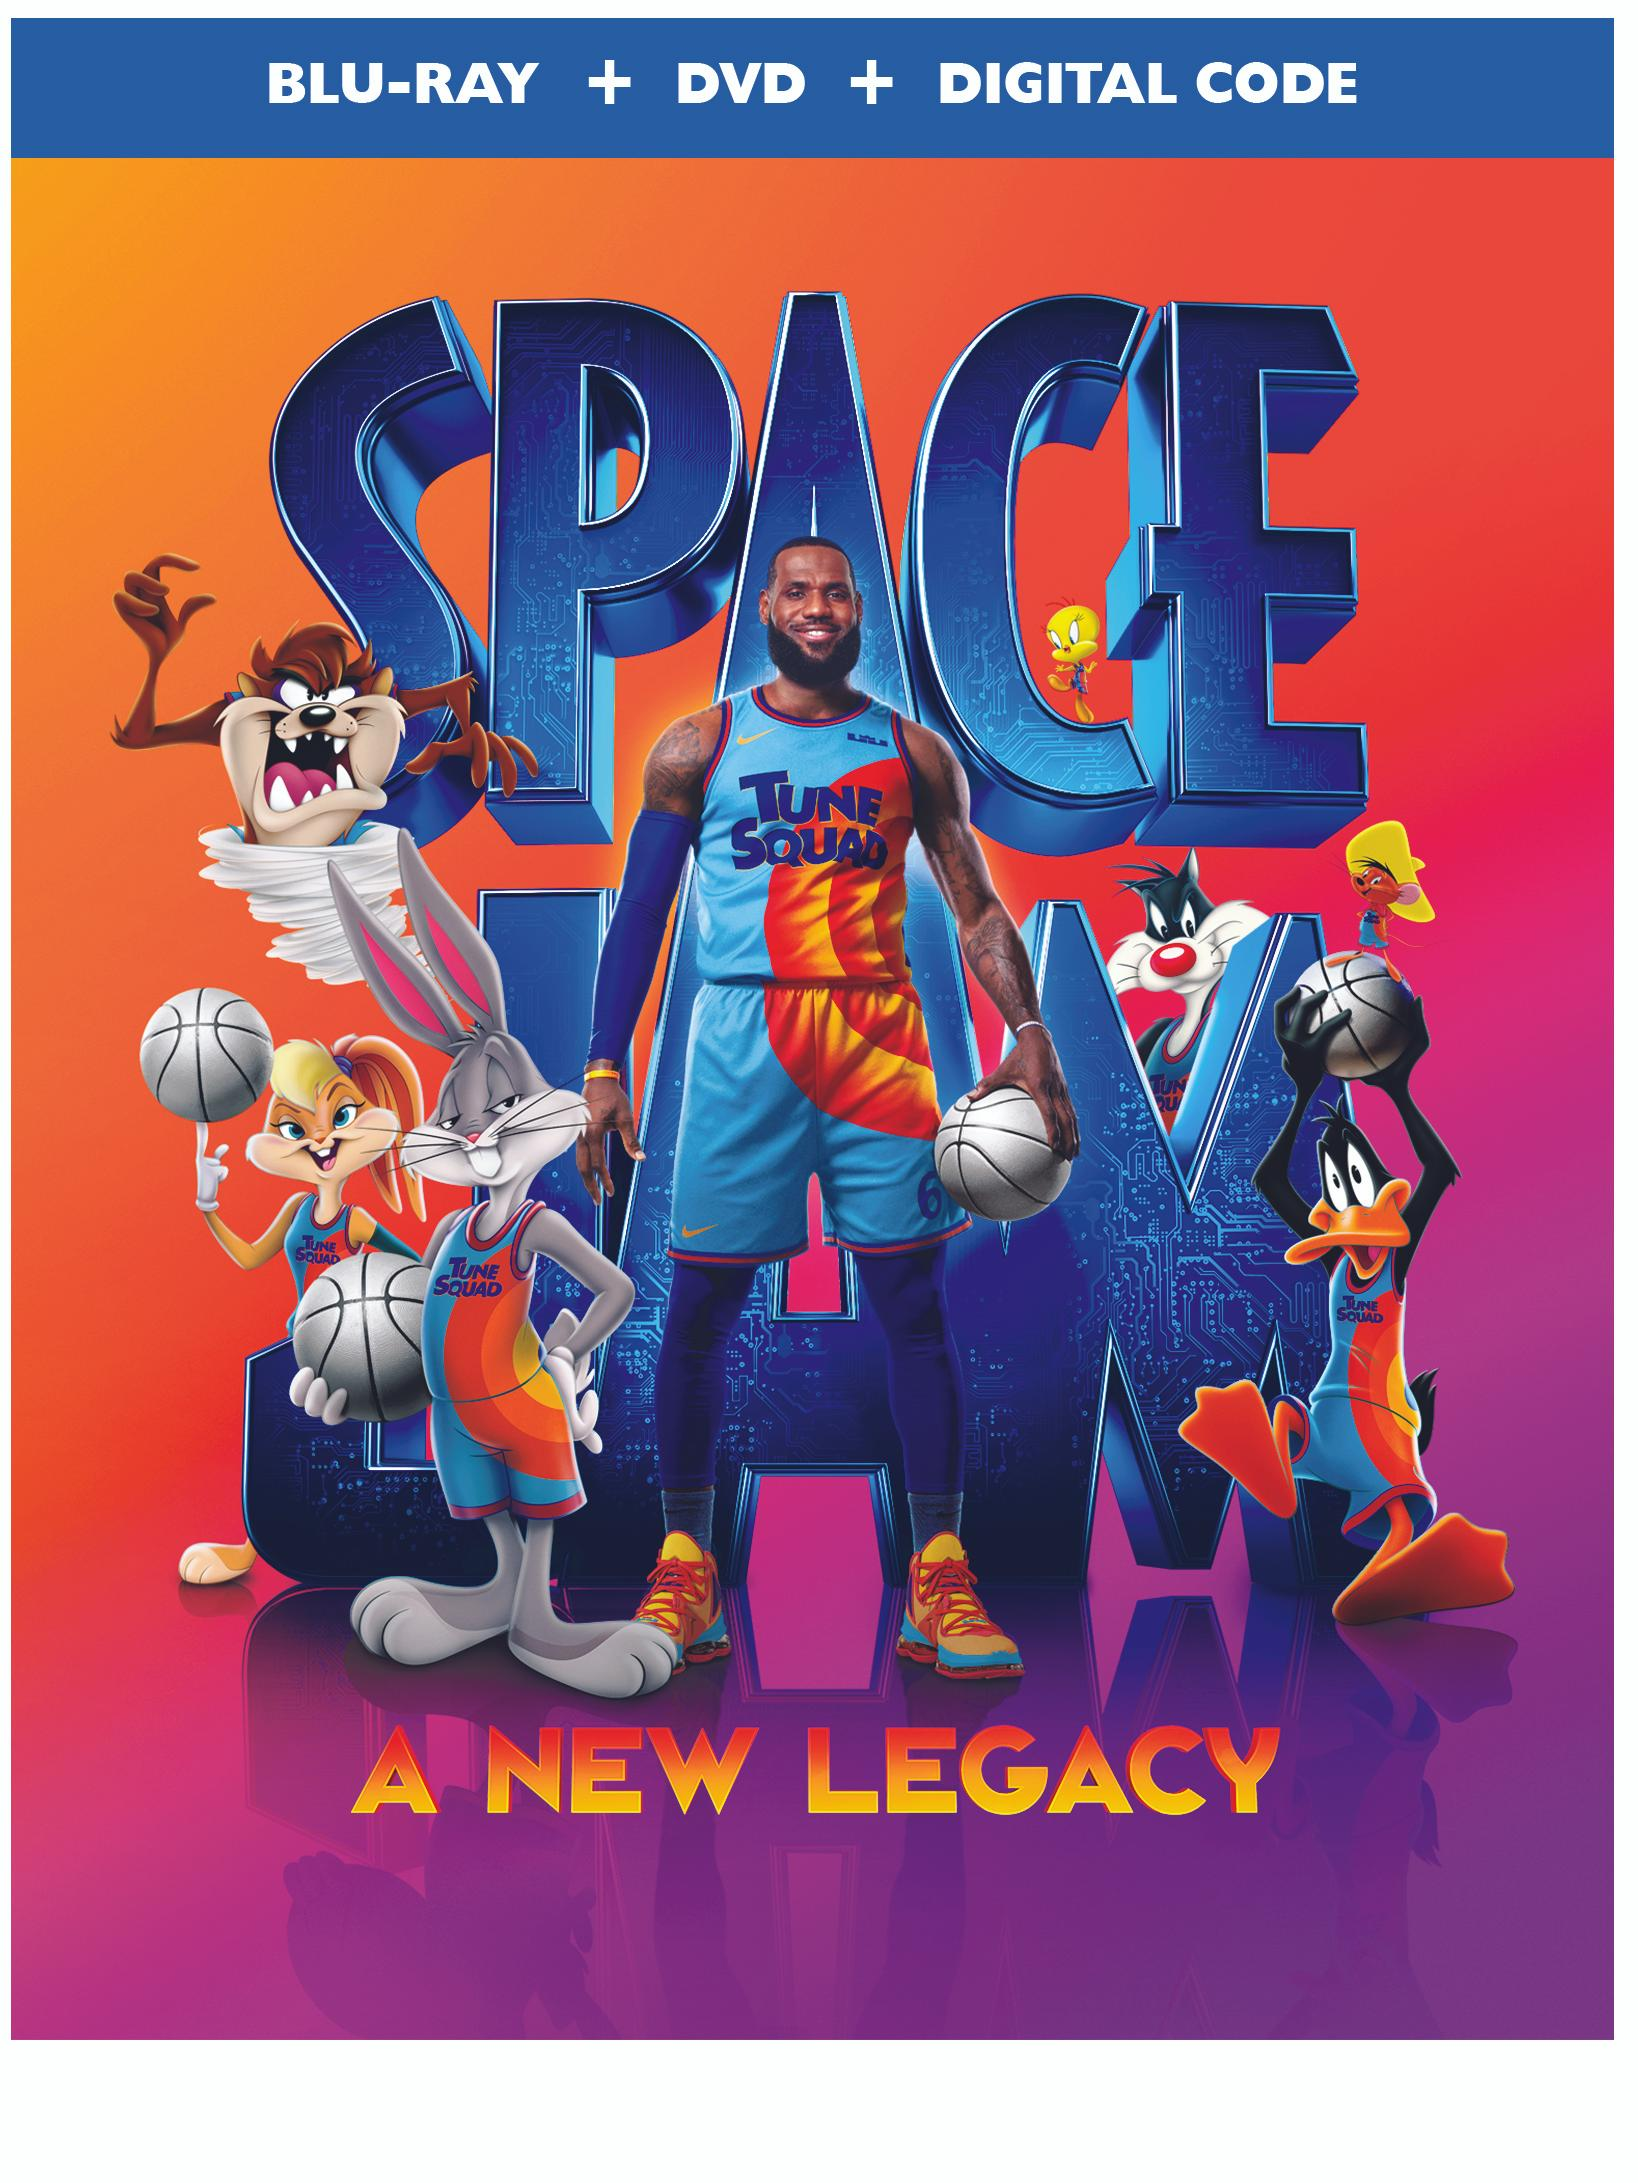 Space Jam: A New Legacy movie poster.